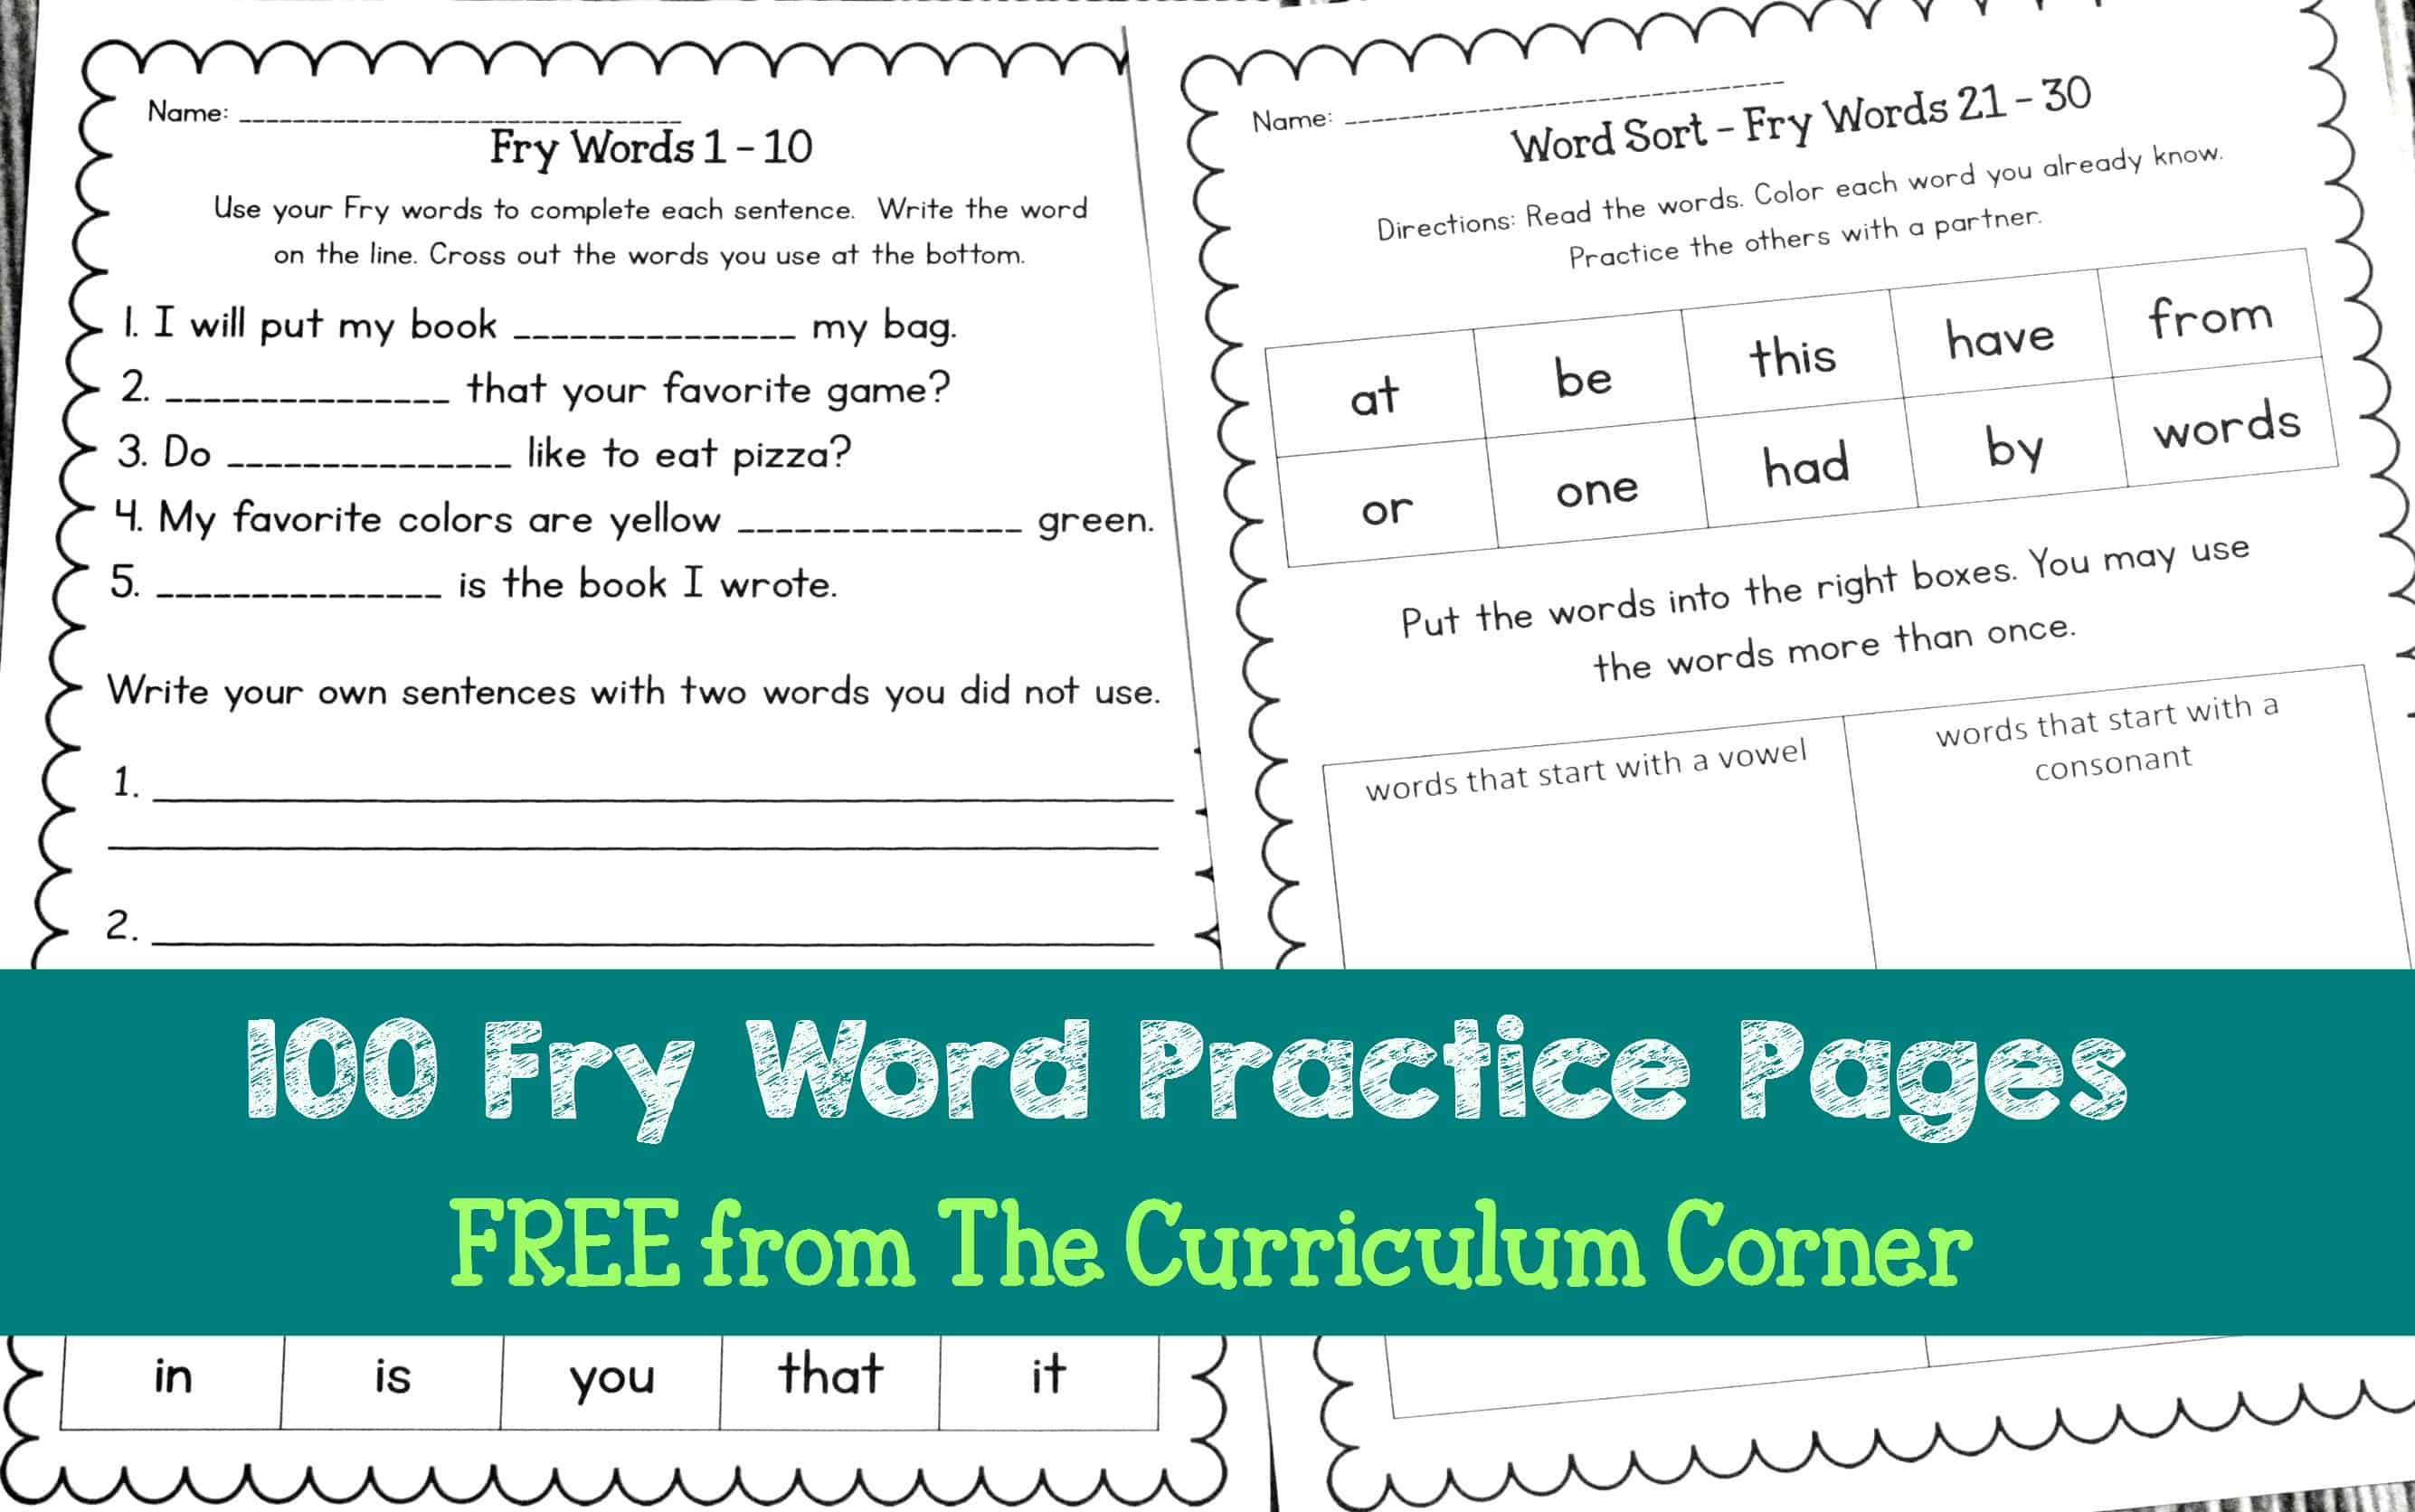 medium resolution of Fry Word Practice Pages - The Curriculum Corner 123